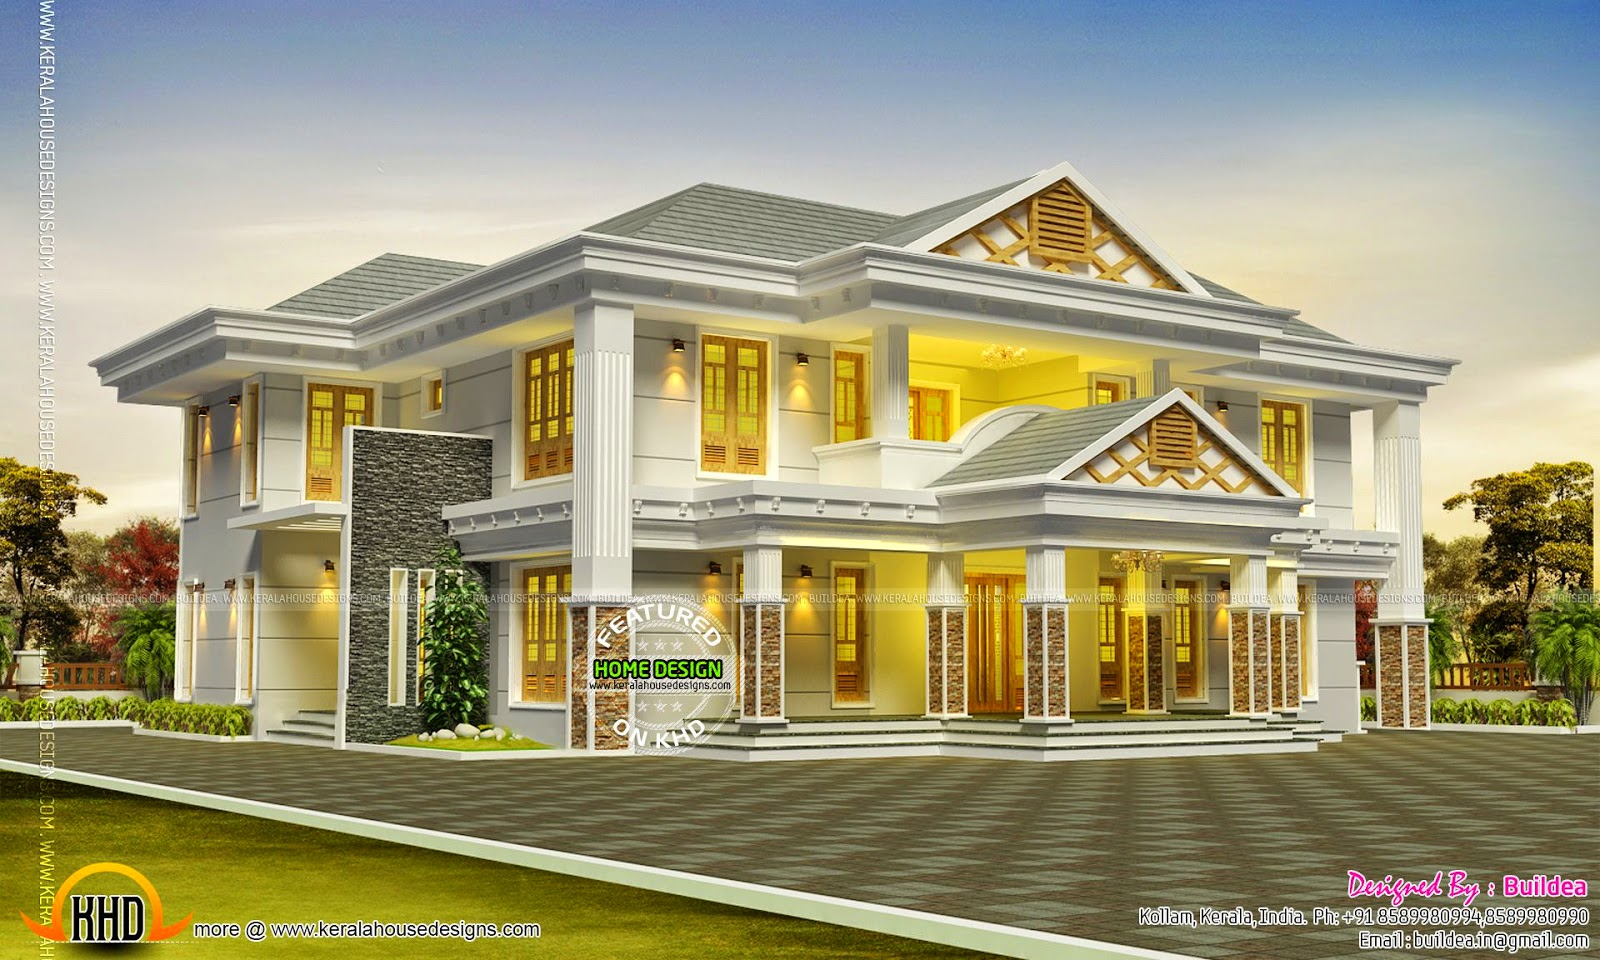 Luxurious sloping roof house kerala home design and for Sloped roof house plans in india